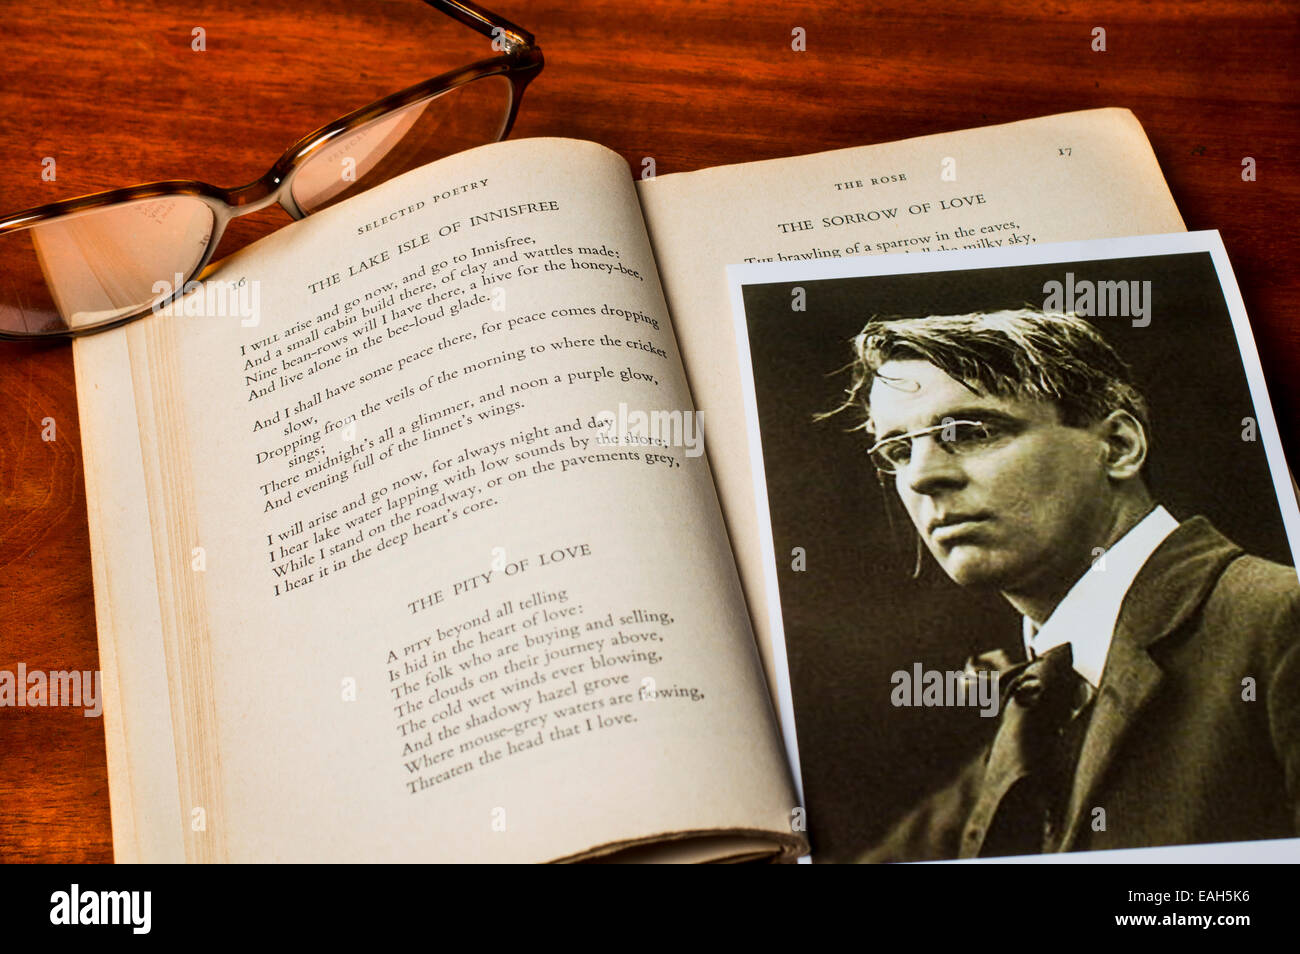 Photo of Irish poet W.B.Yeats with the text of his famous poem The Lake Isle of Innisfree - Stock Image